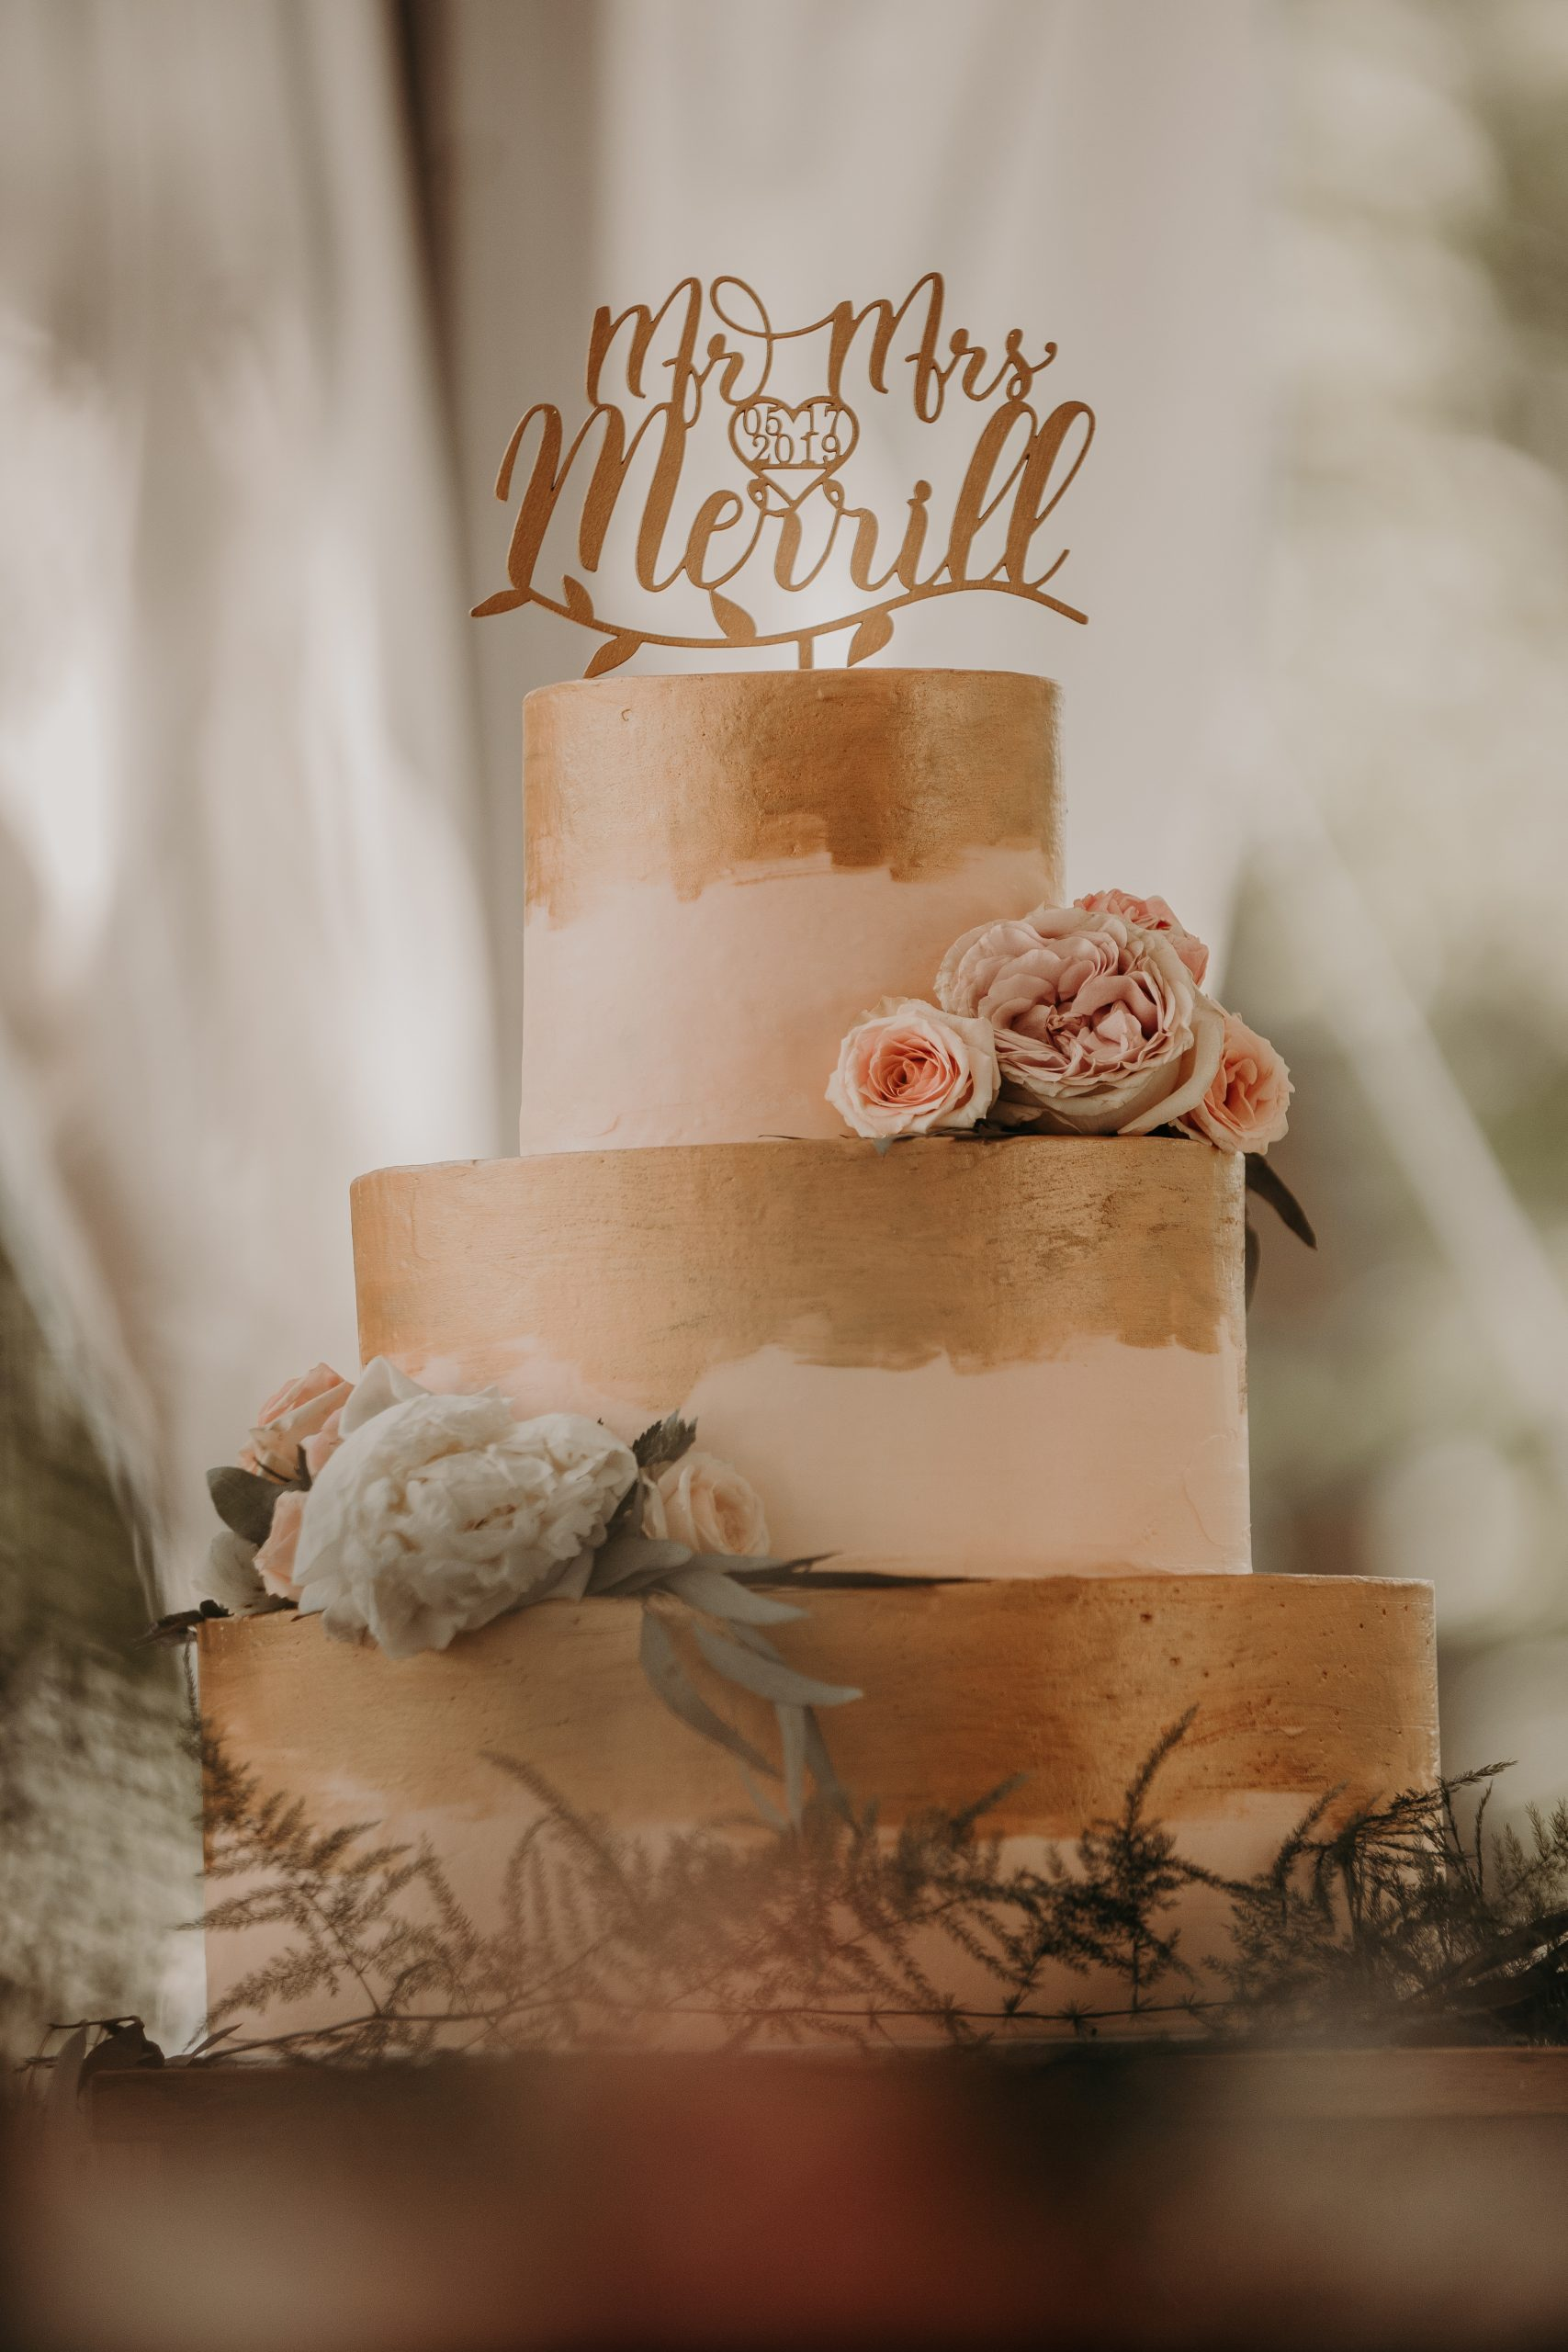 A lovely cake accented with gold paint with blush pink fondant. Mr. and Mrs. Merrill. Christine and Richard wed on the Chestnut Hill Villa grounds on May of 2019. This organic ethereal styled wedding was captured by Garnet Dahlia Photography and featured on Dream Weddings.